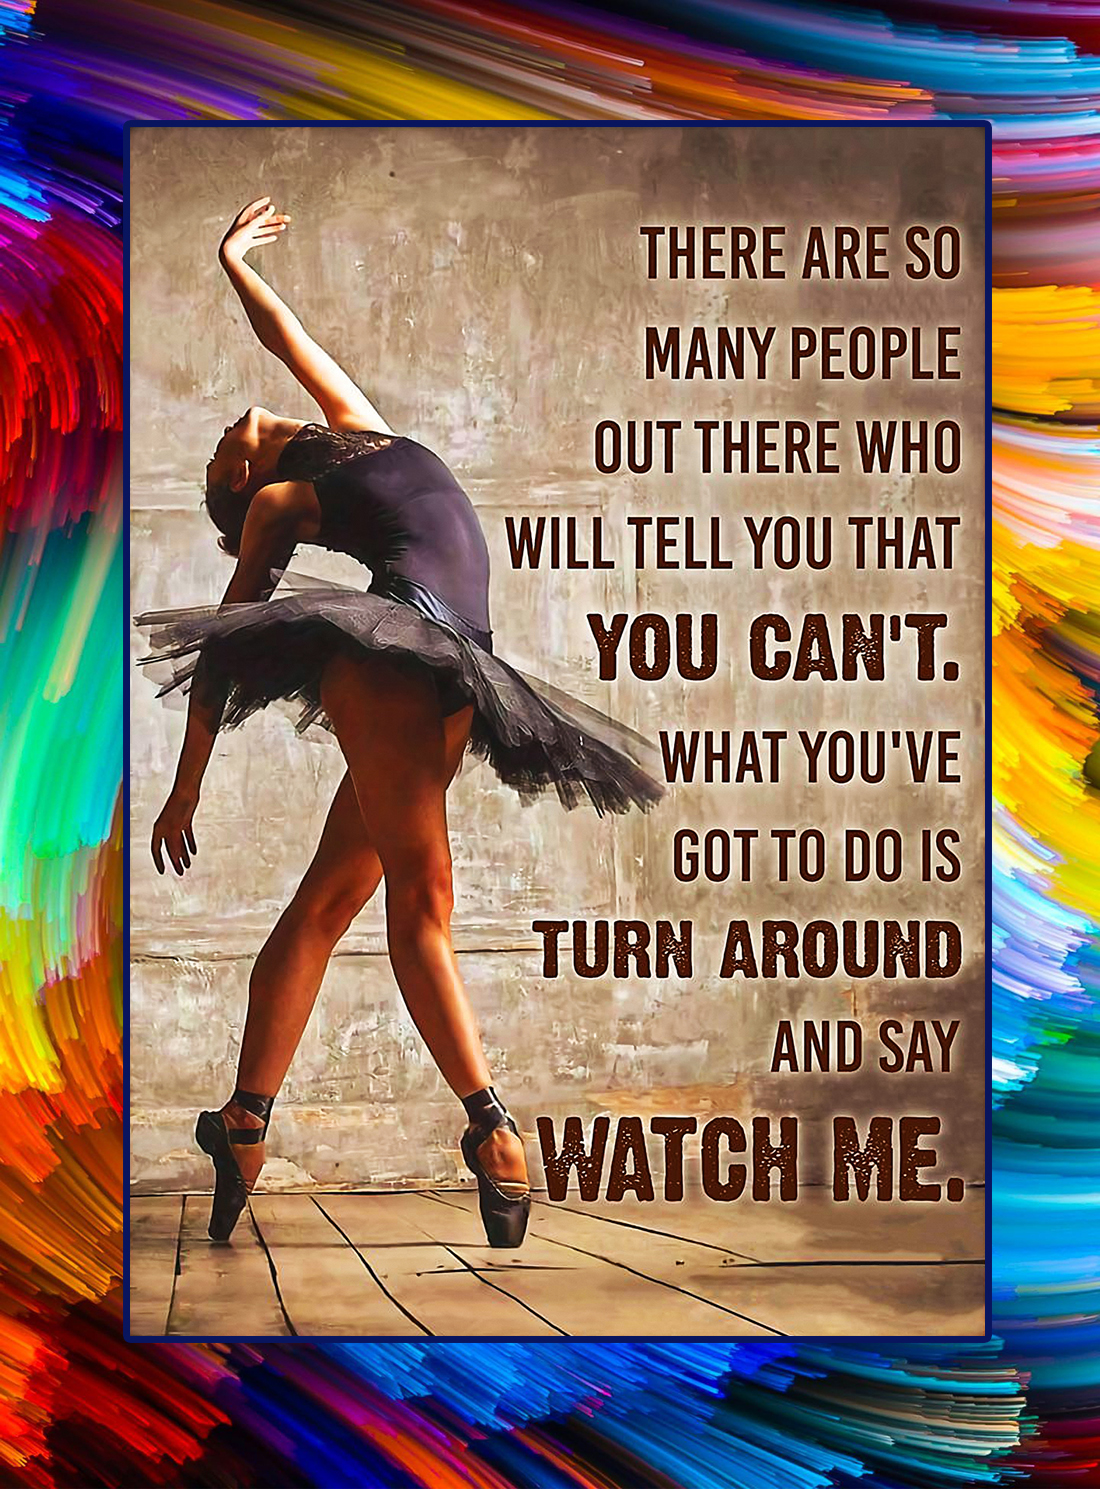 Ballet dancer turn around and say watch me poster